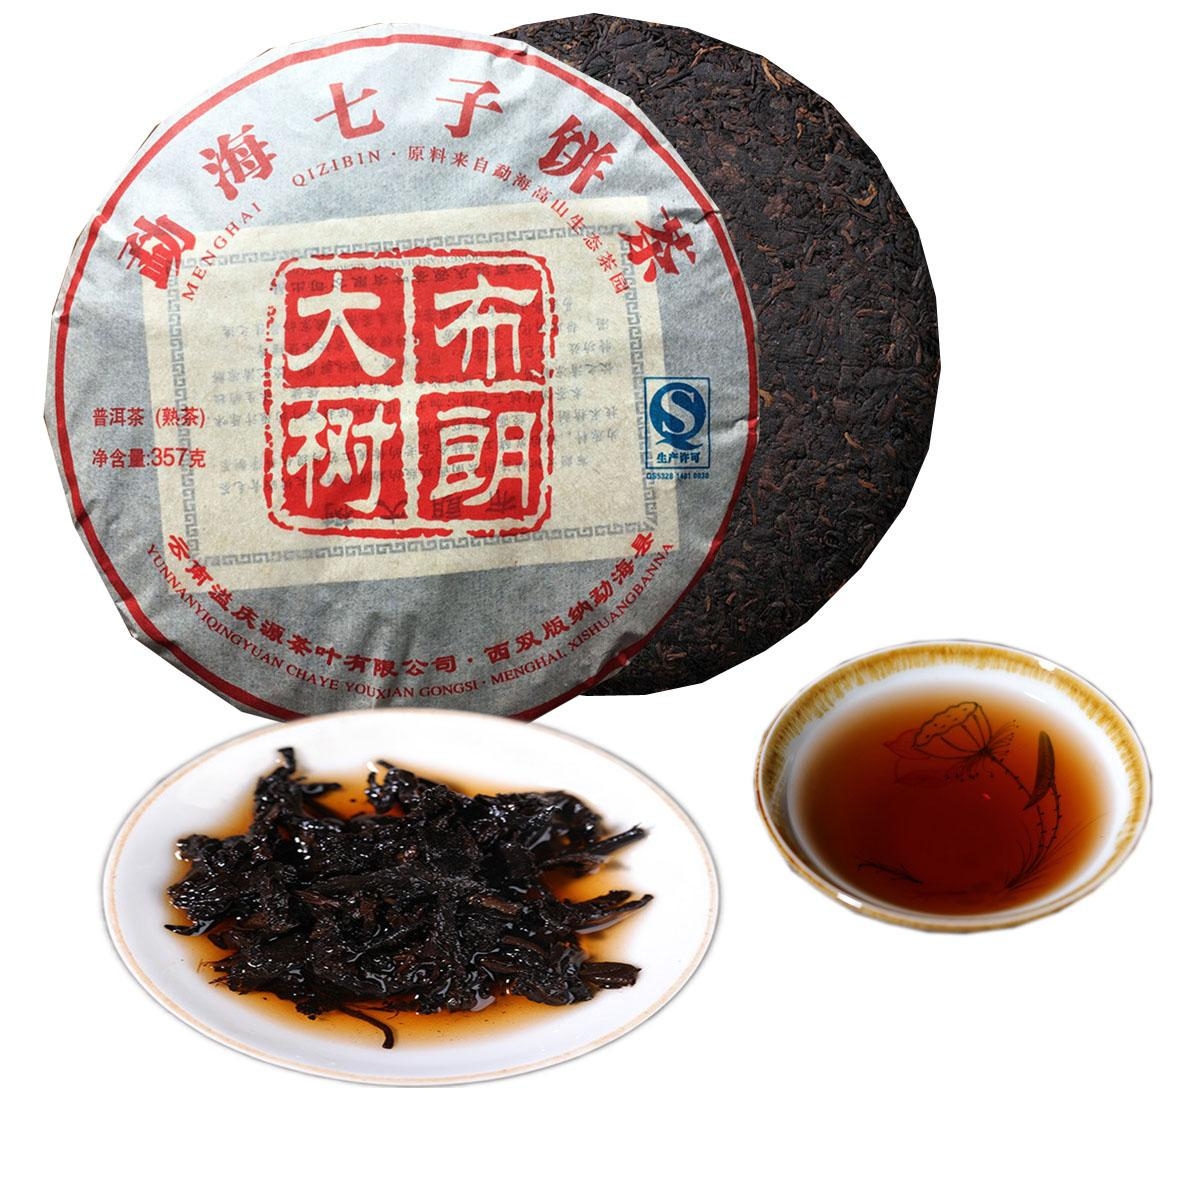 357g Yunnan Big Tree Brown Ripe Puer Tea Cake Organic Natural Pu'er Oldest Tree Cooked Puer Black Puerh Preference Green Food